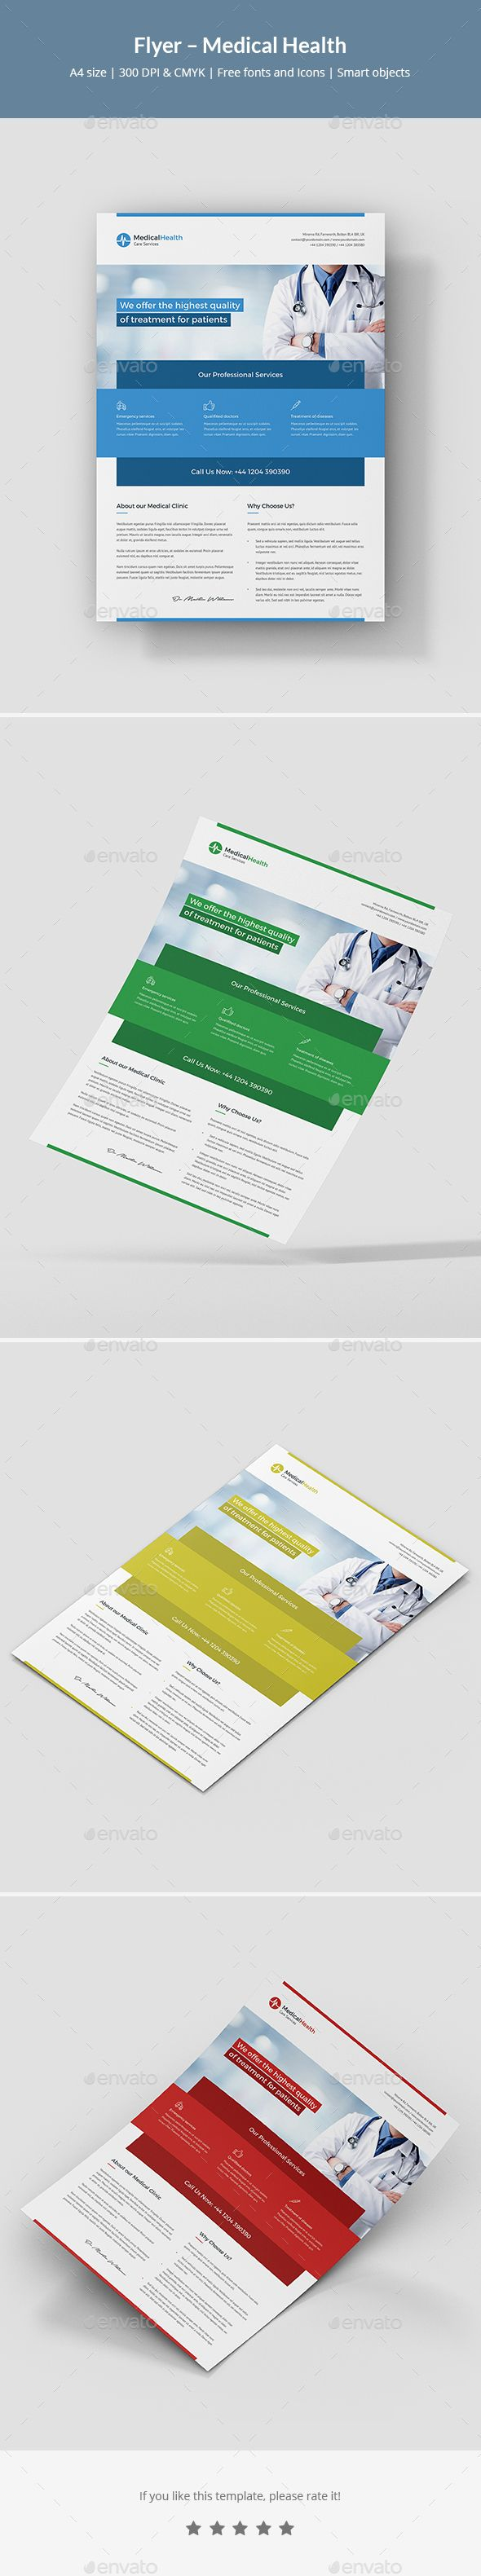 Medical Health Flyer Design Template Psd Flyer Templates